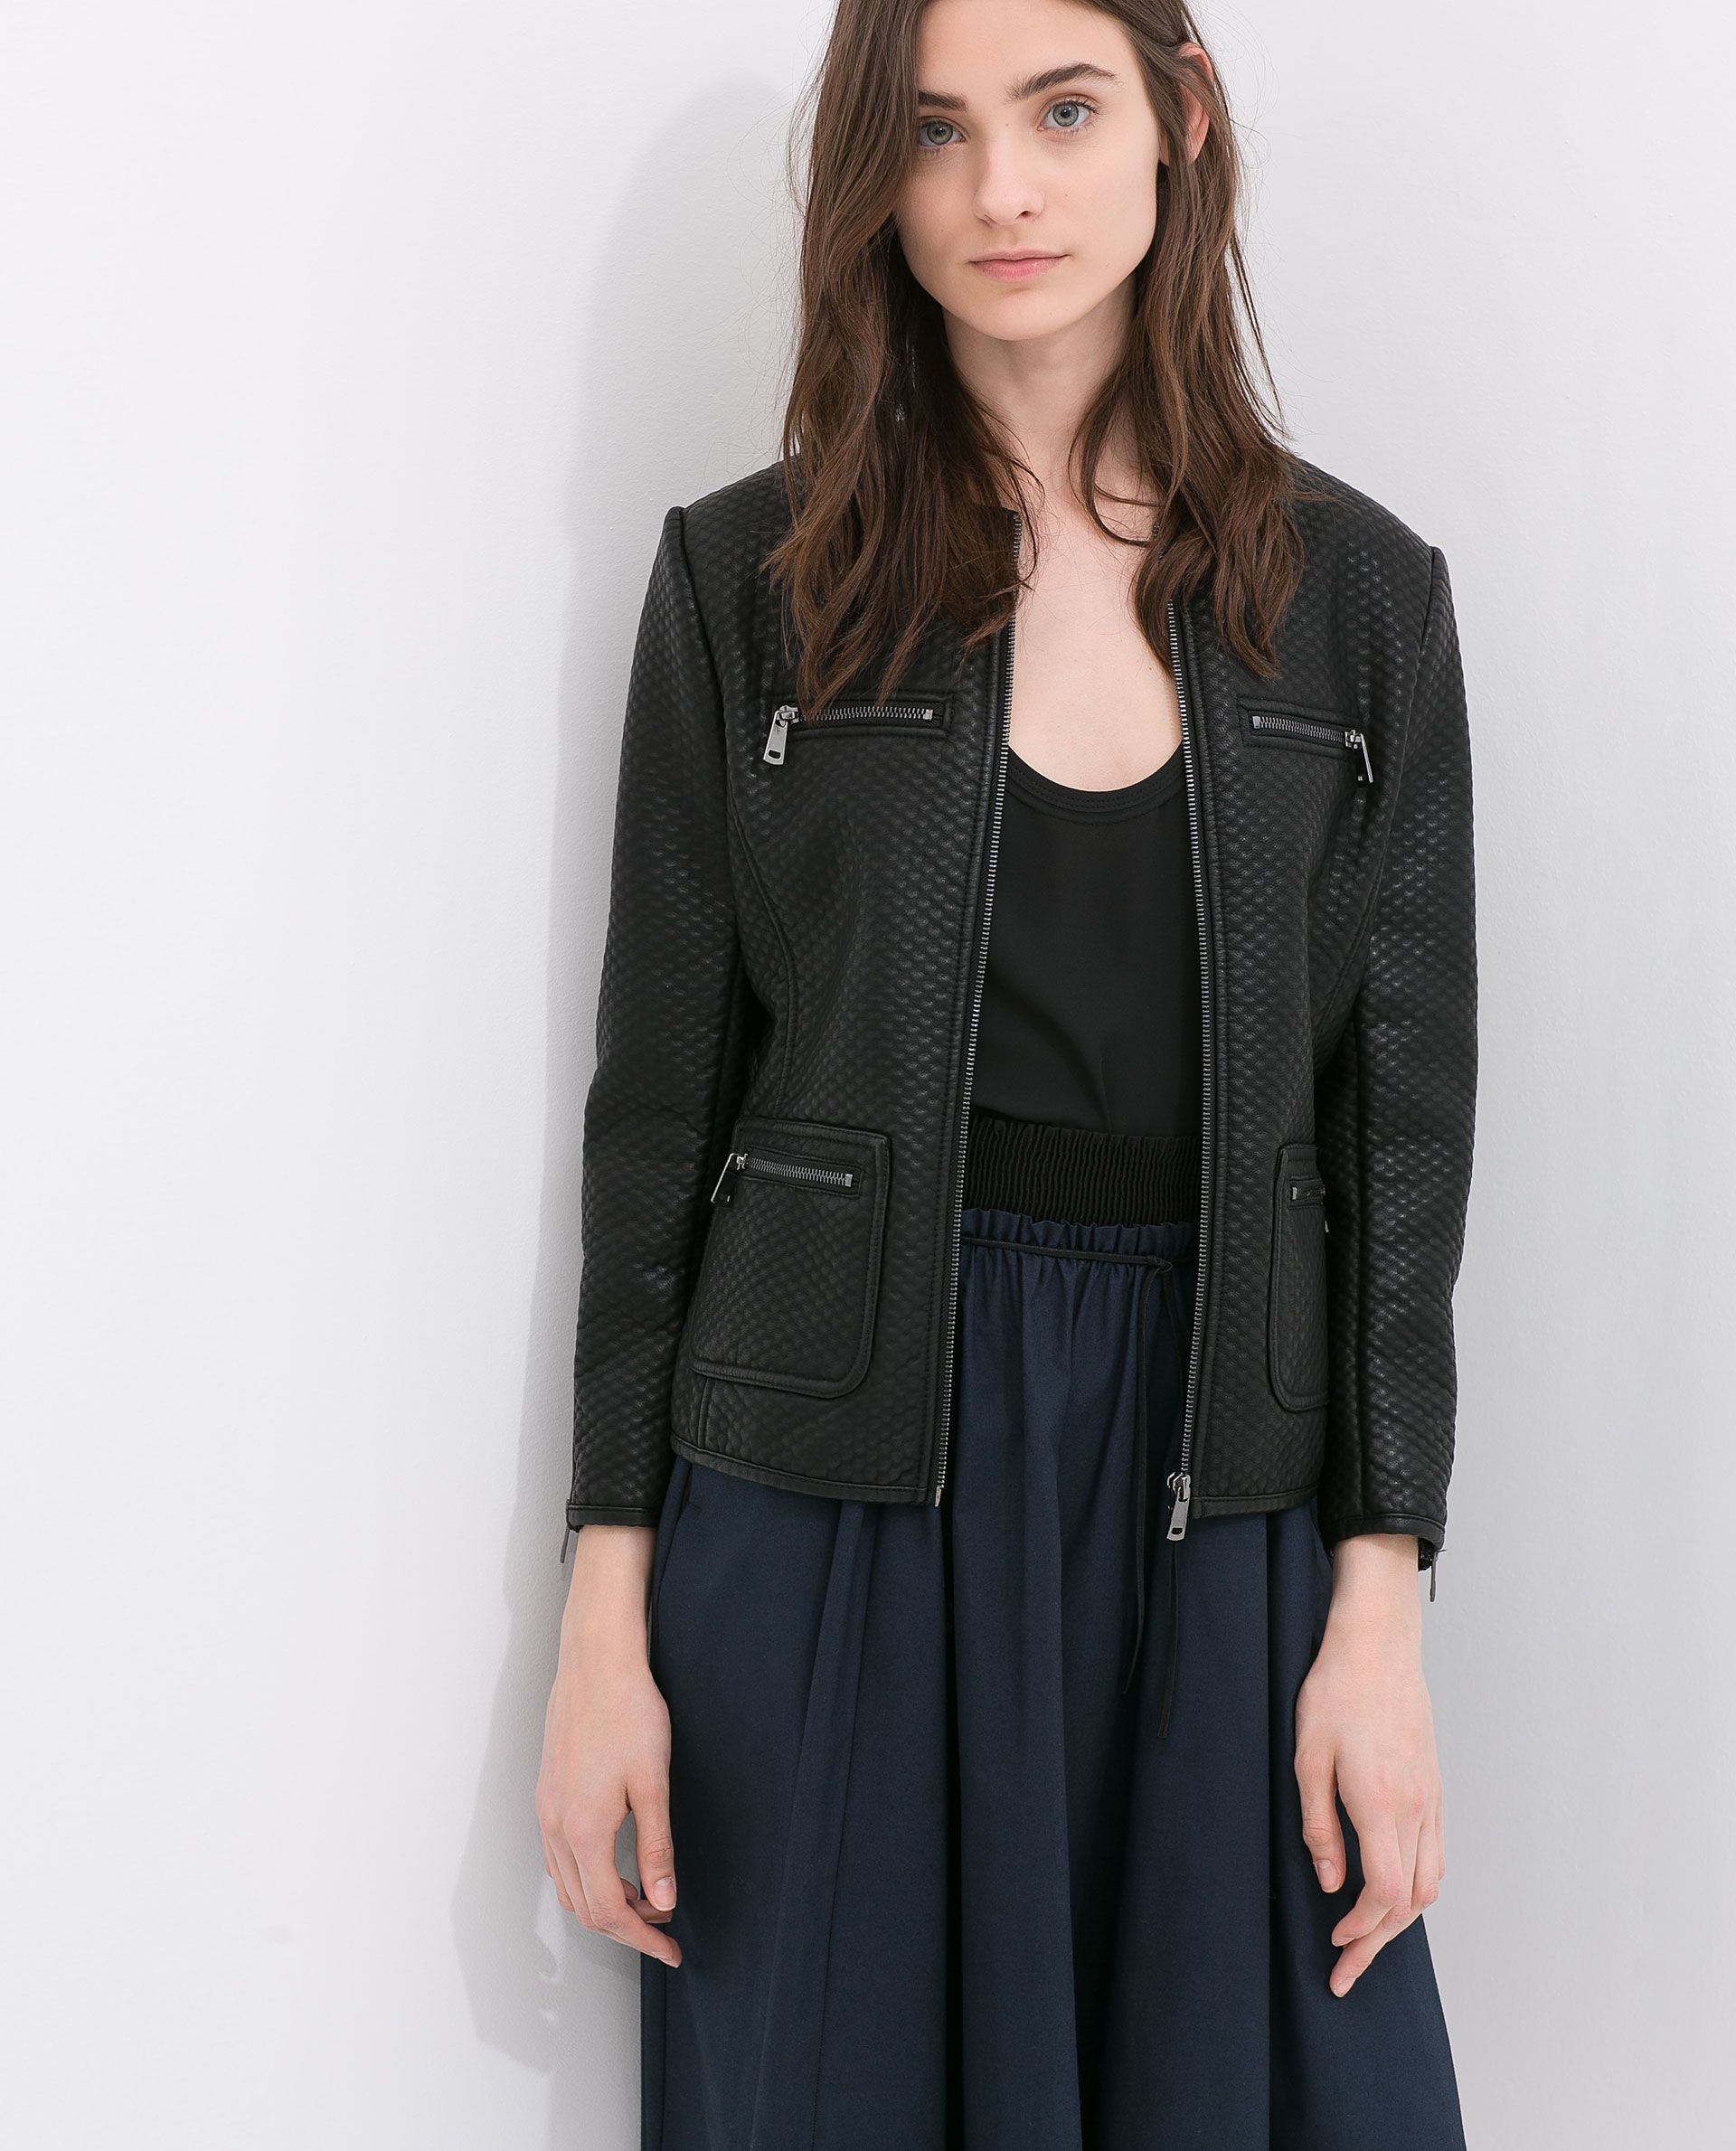 Pin by Jagoda Be on Jackets Black faux leather jacket